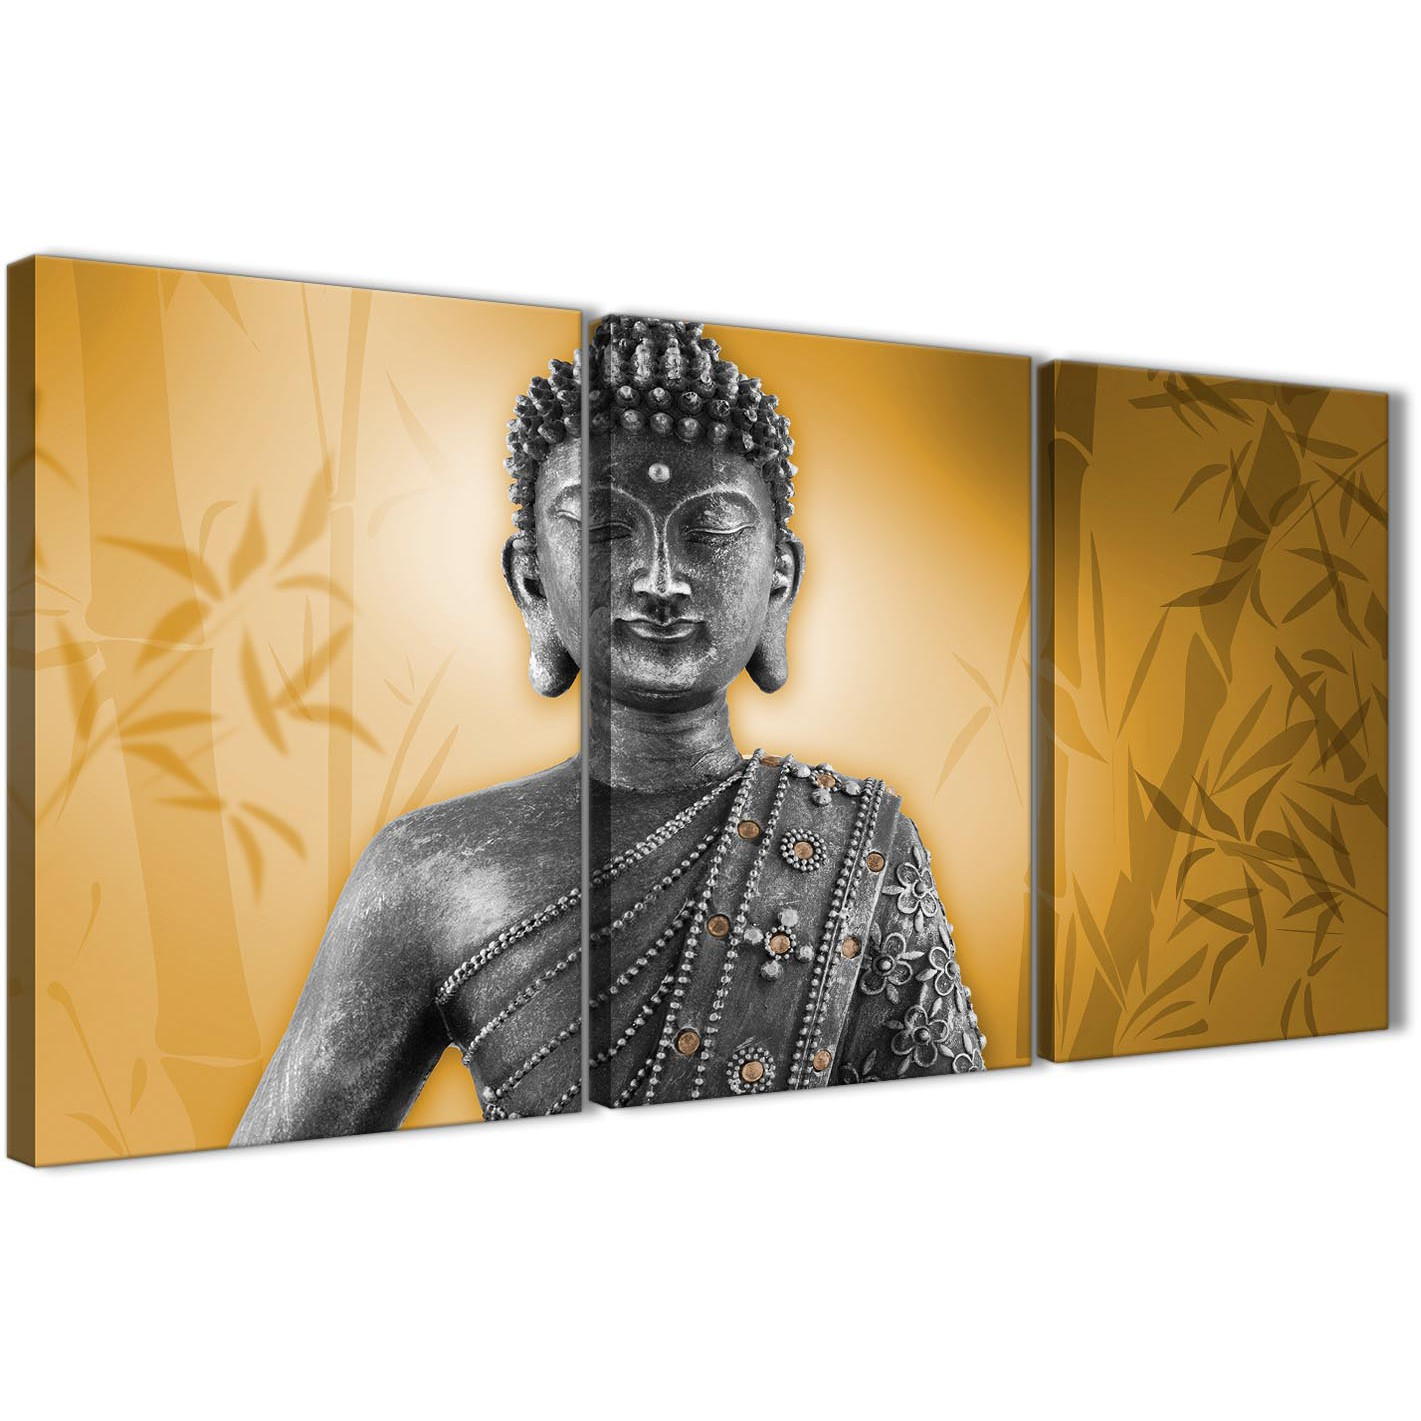 Orange and Grey Silver Canvas Art Prints of Buddha - Multi Set of 3 ...